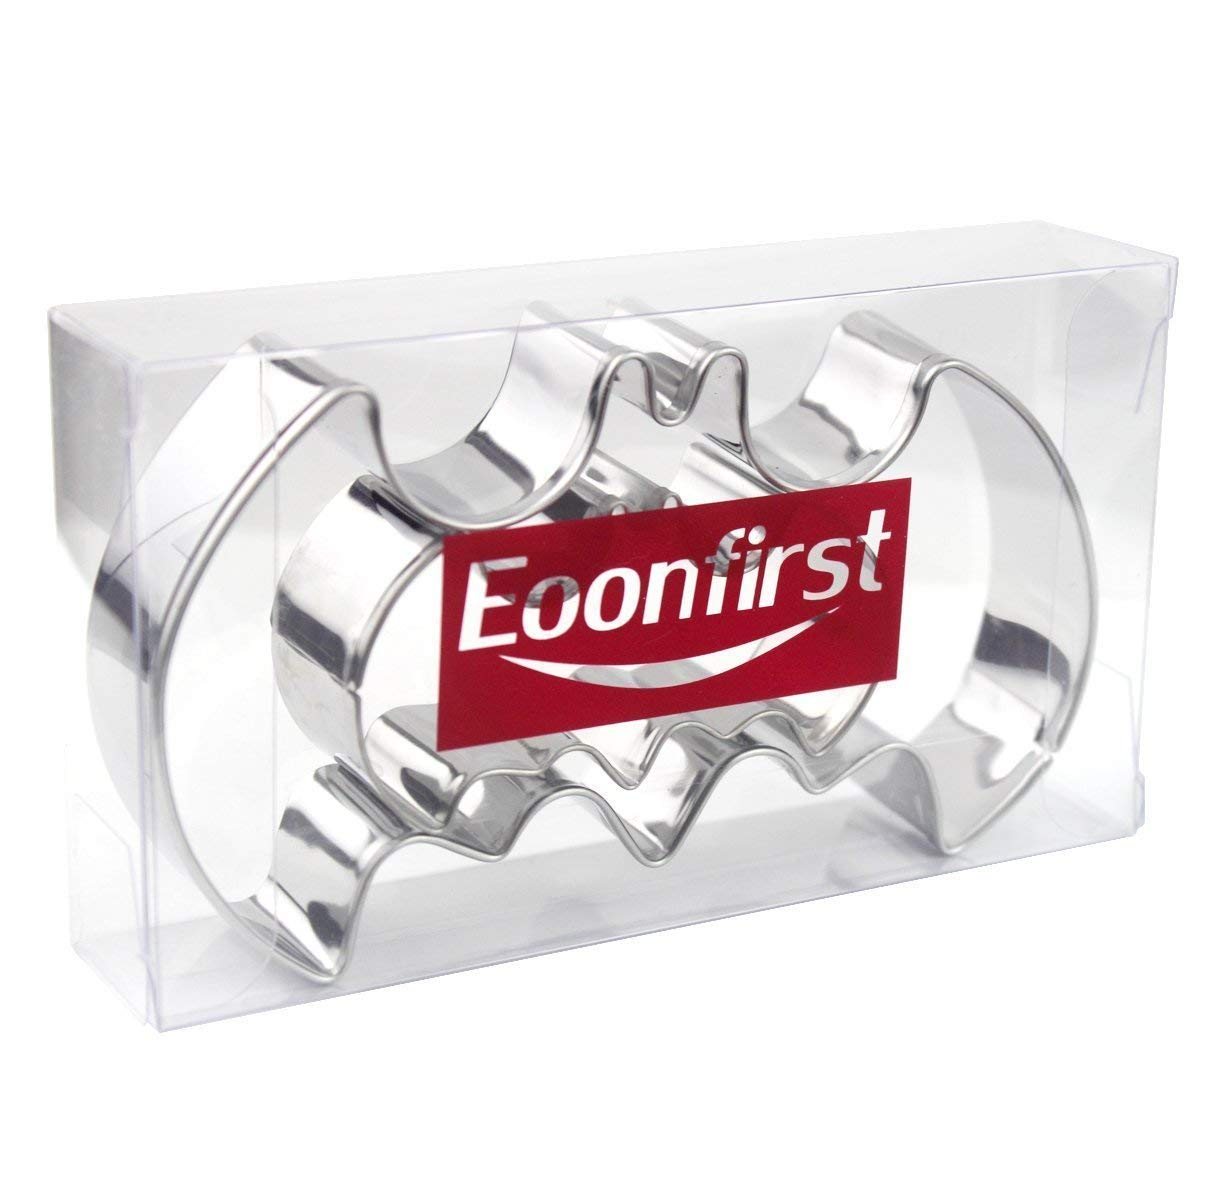 Eoonfirst Bat Cookie Cutter CC0252